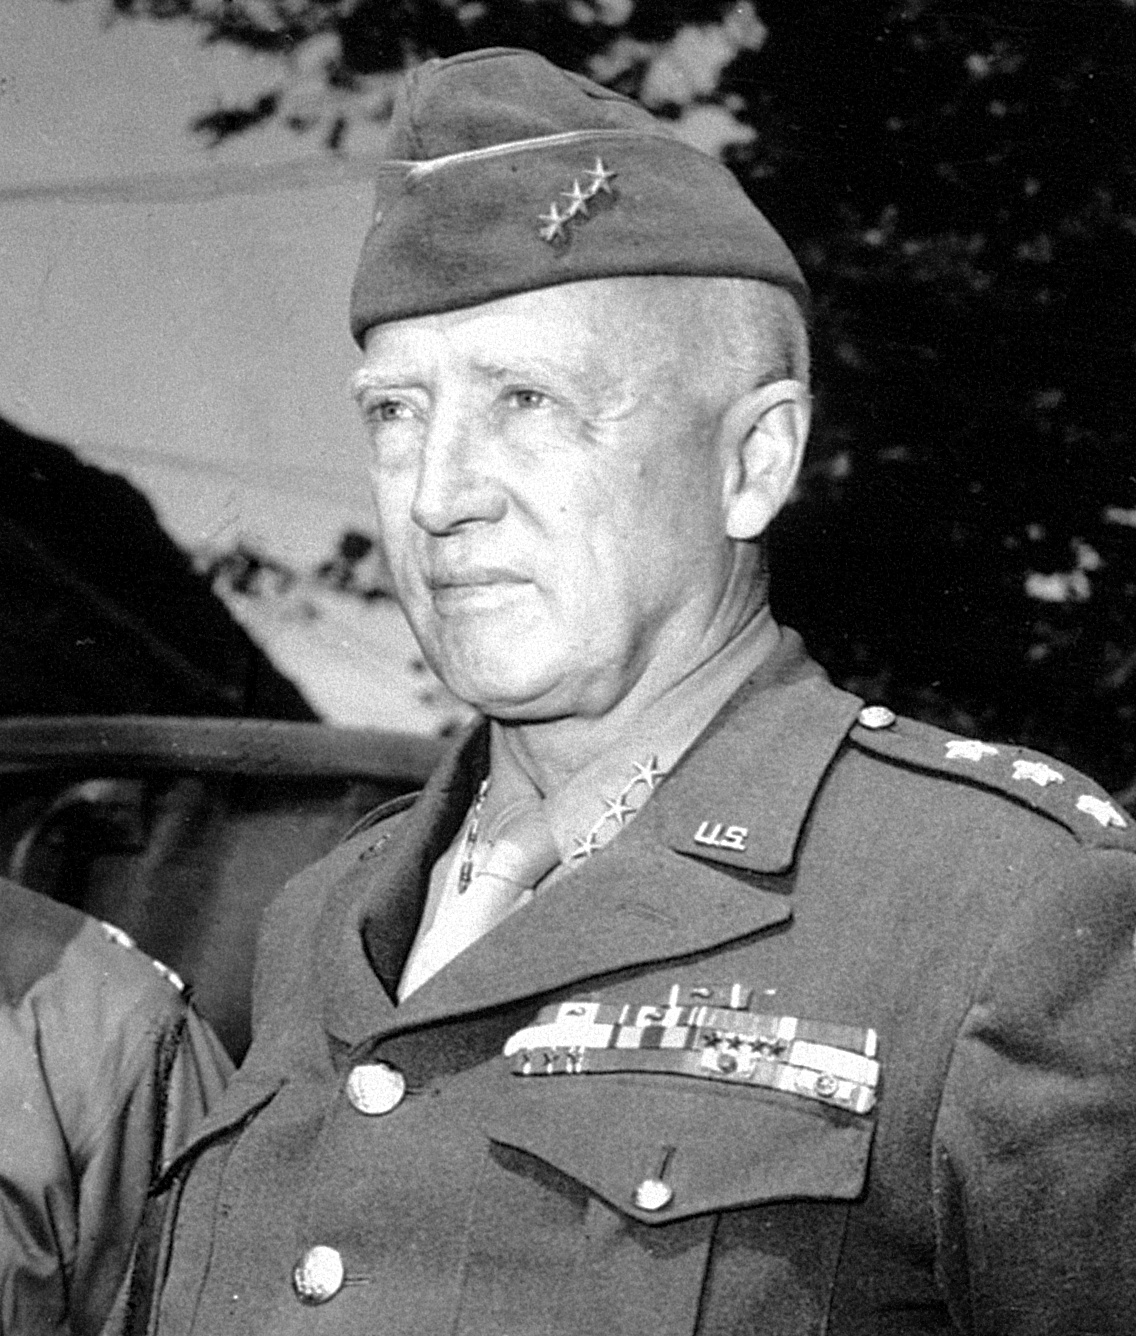 an essay on the life and works of smedley darlington butler Additional quotes by major general smedley butler major general smedley darlington butler our mission is to bring to life the principles articulated in.